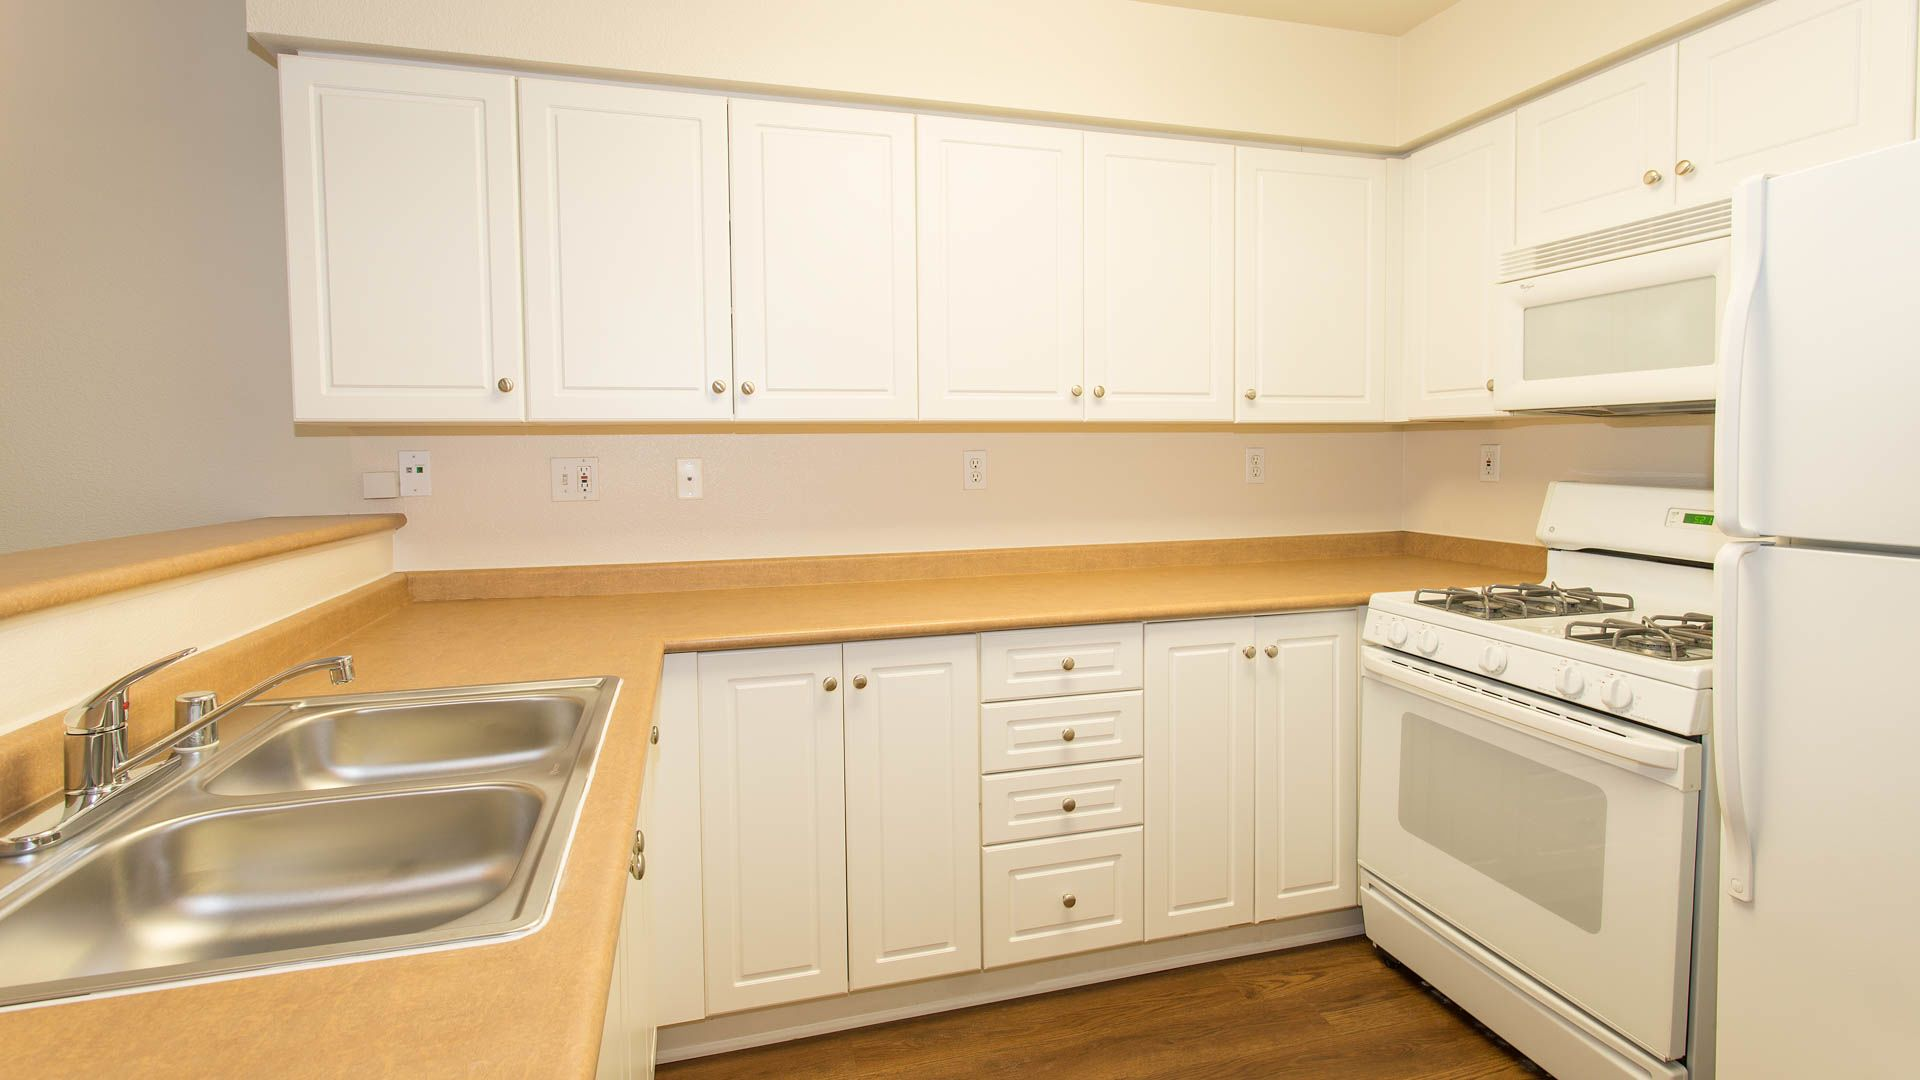 Artisan Square Apartments - Kitchen